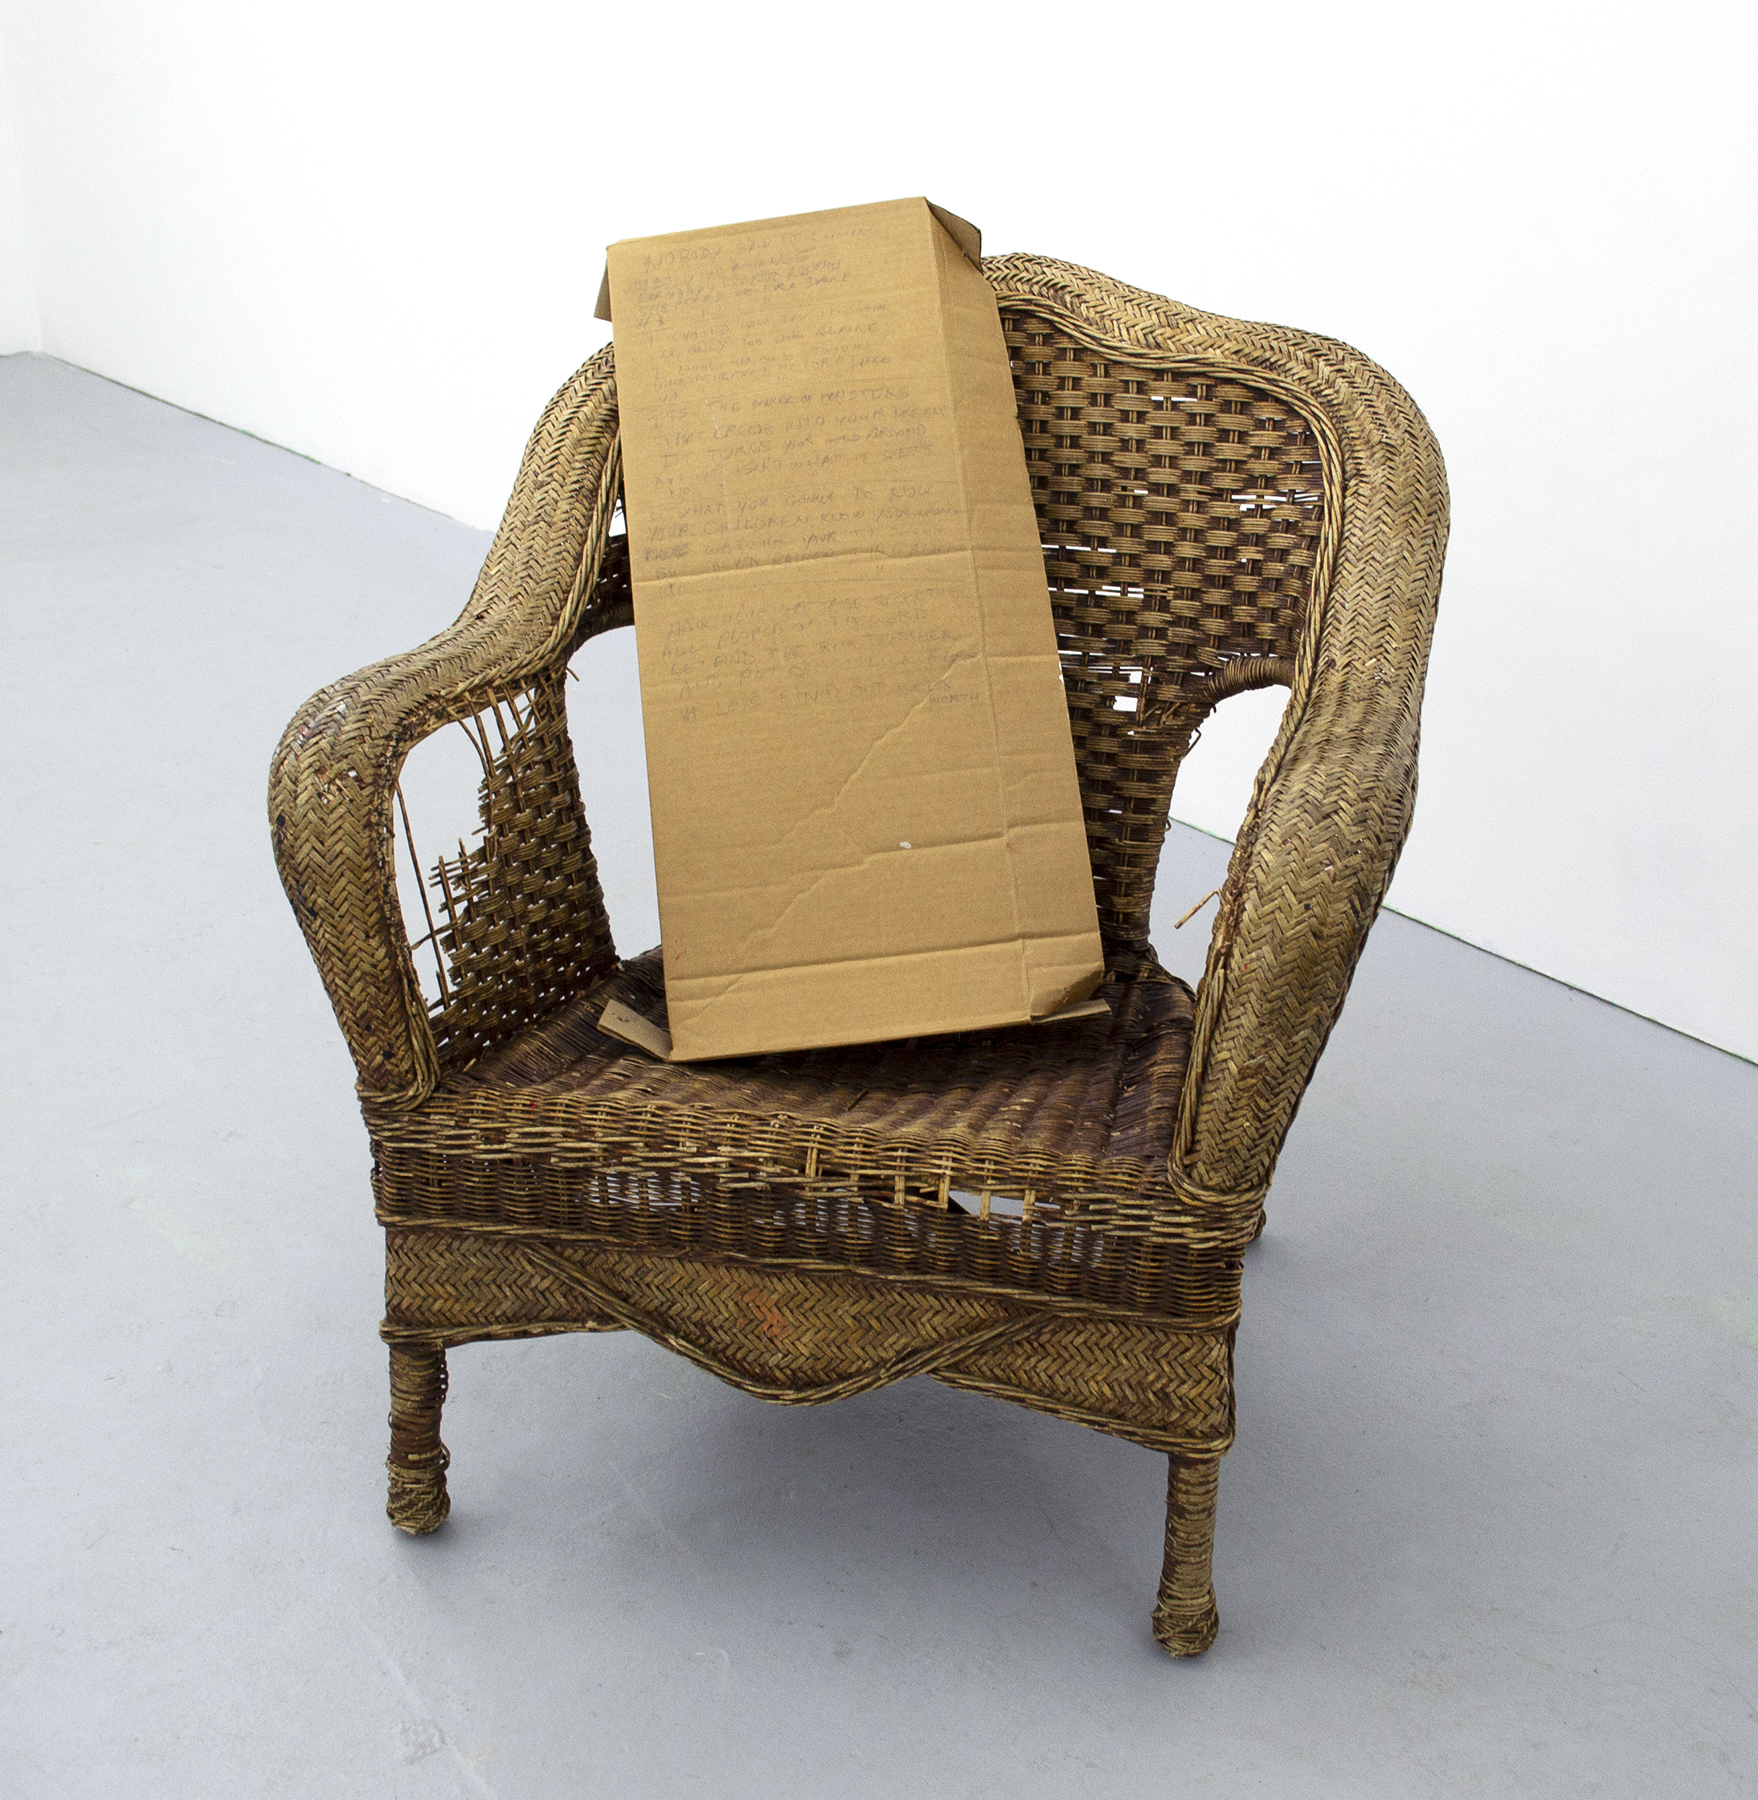 Beau Dick, Chair